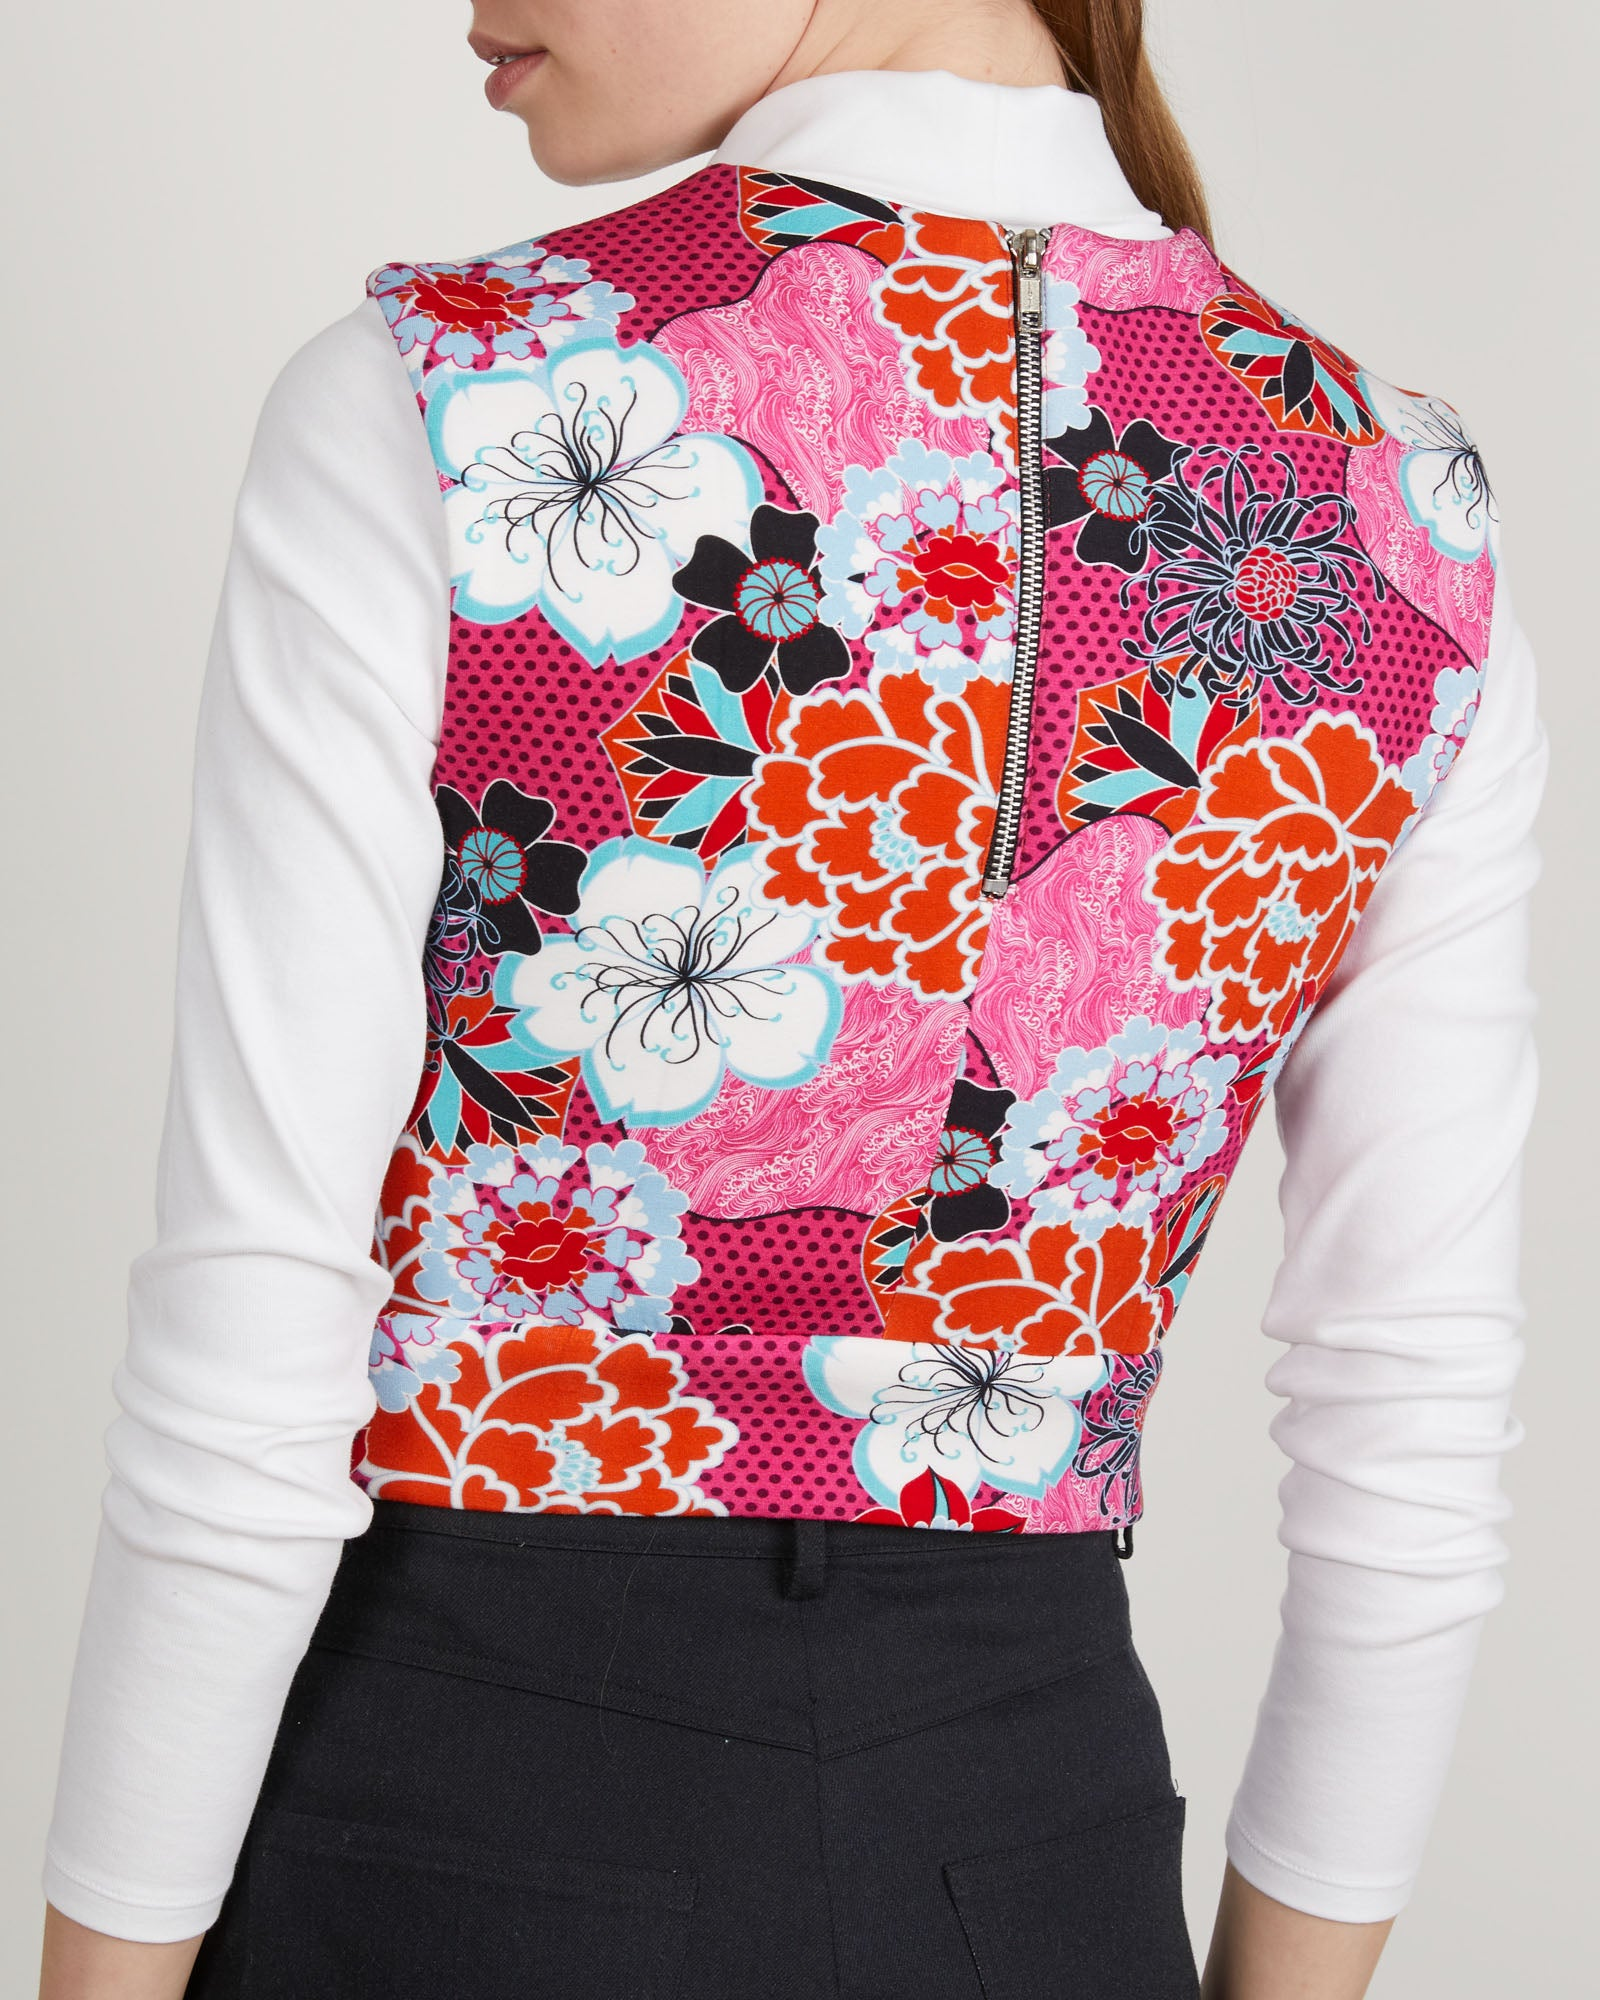 THE KIT's Leah Vest in Pink Pop Floral print is a seasonless layering piece that hits at the natural waist with a fitted silhouette. Centerback zipper hardware adds interest to this styling piece in a spongey heavy rayon.